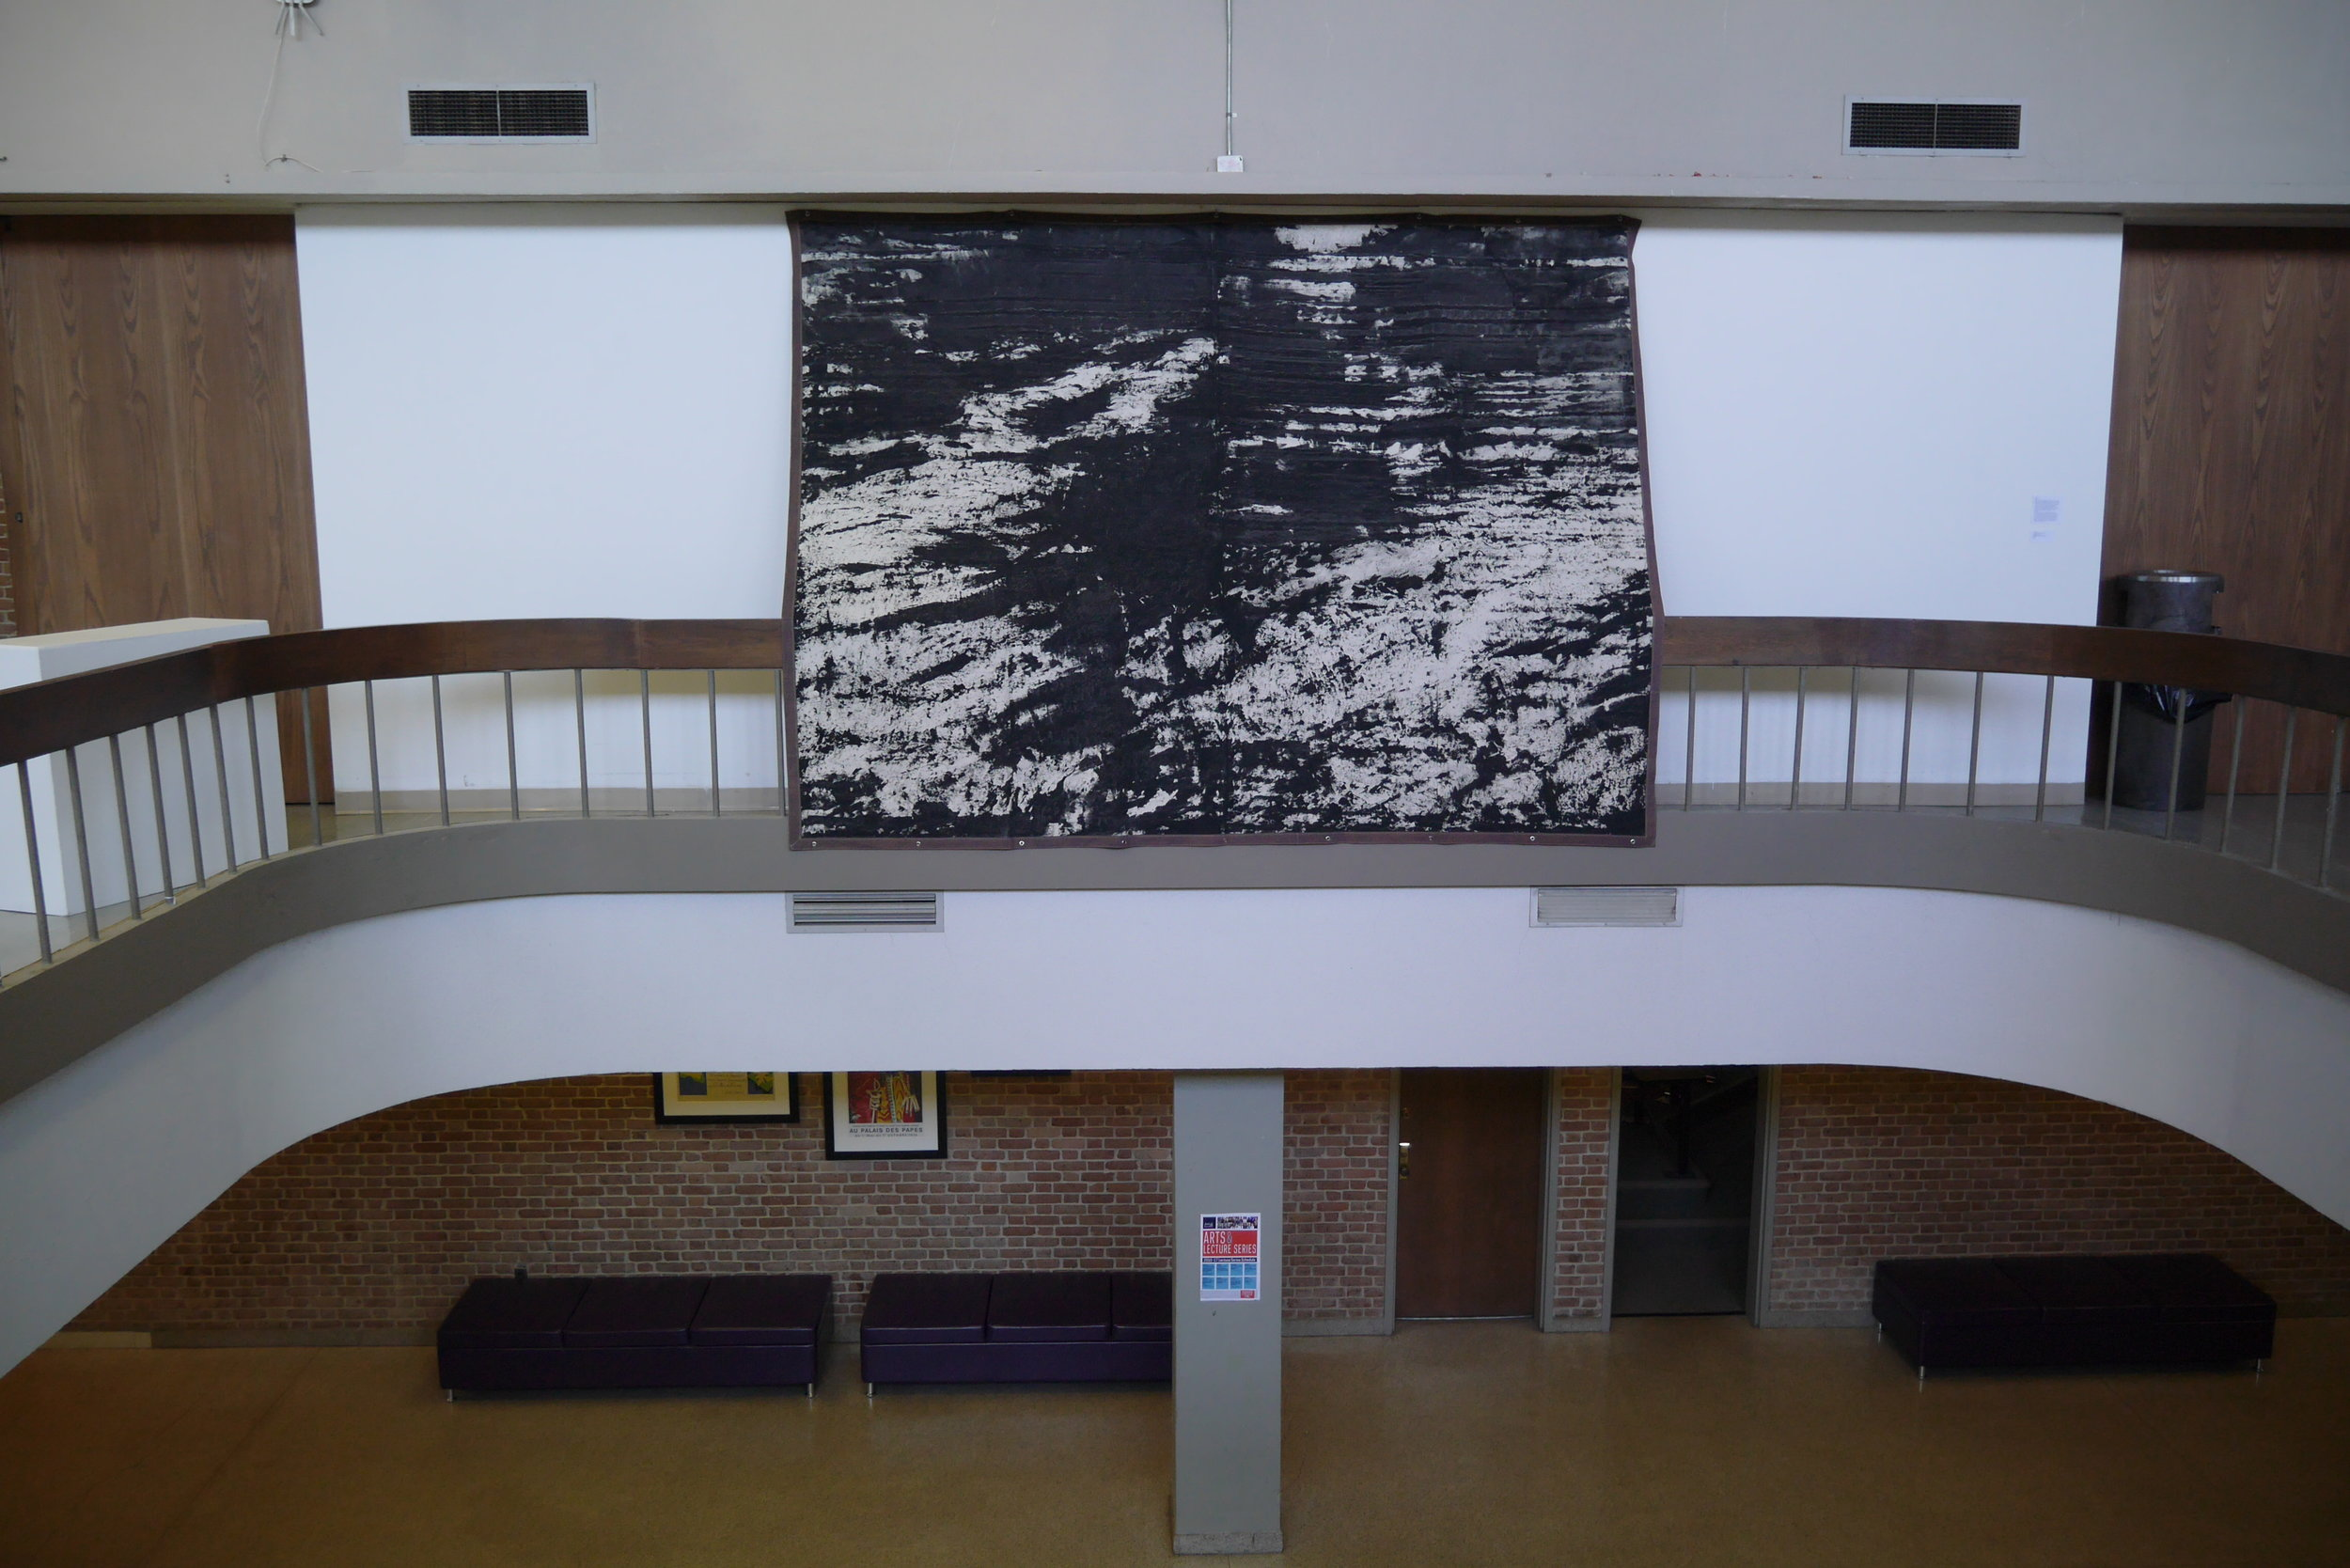 Liz Ensz, A Topographic Portrait of a Disappearing Site